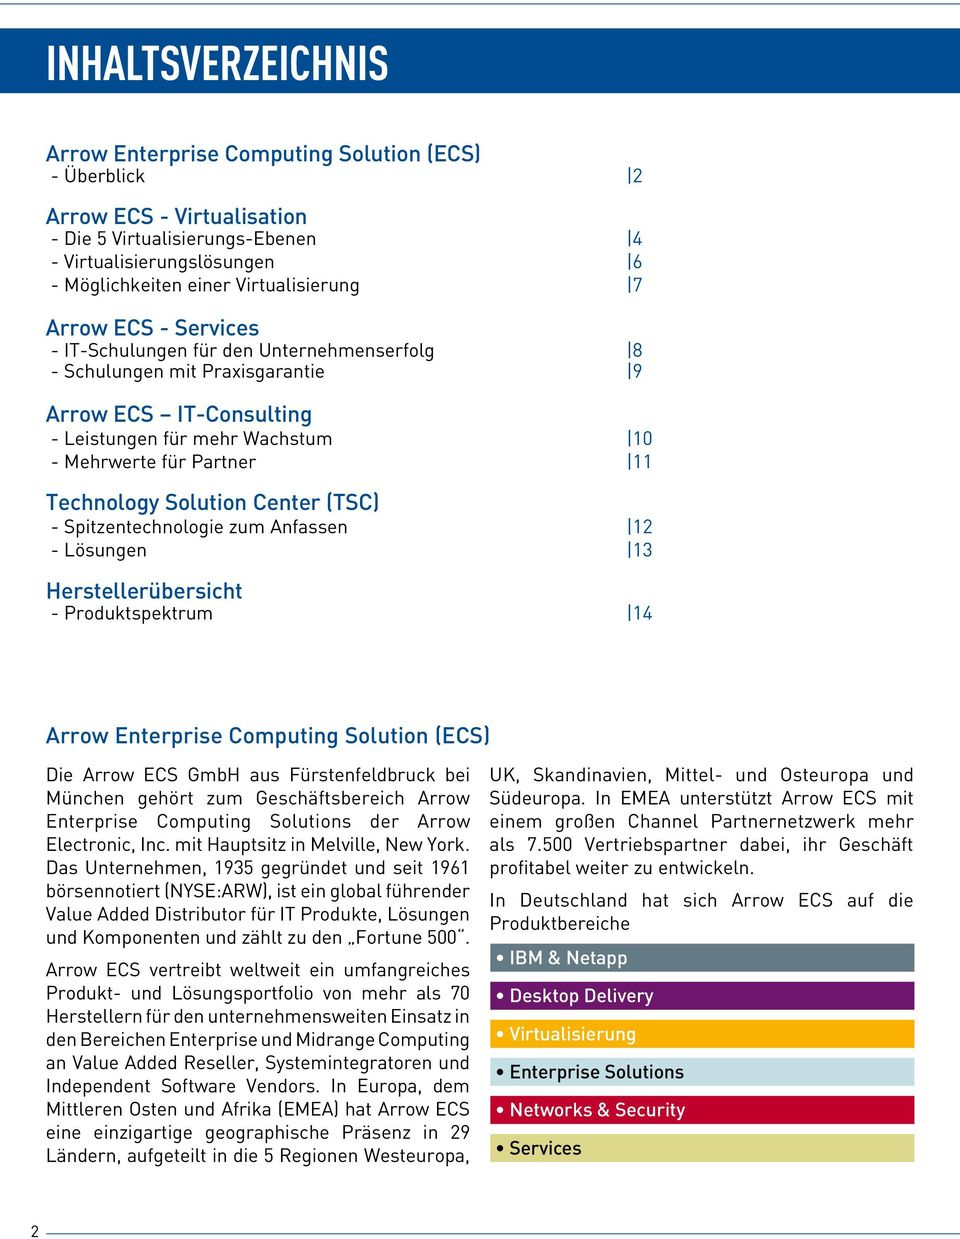 11 Technology Solution Center (TSC) - Spitzentechnologie zum Anfassen 12 - Lösungen 13 Herstellerübersicht - Produktspektrum 14 Arrow Enterprise Computing Solution (ECS) Die Arrow ECS GmbH aus